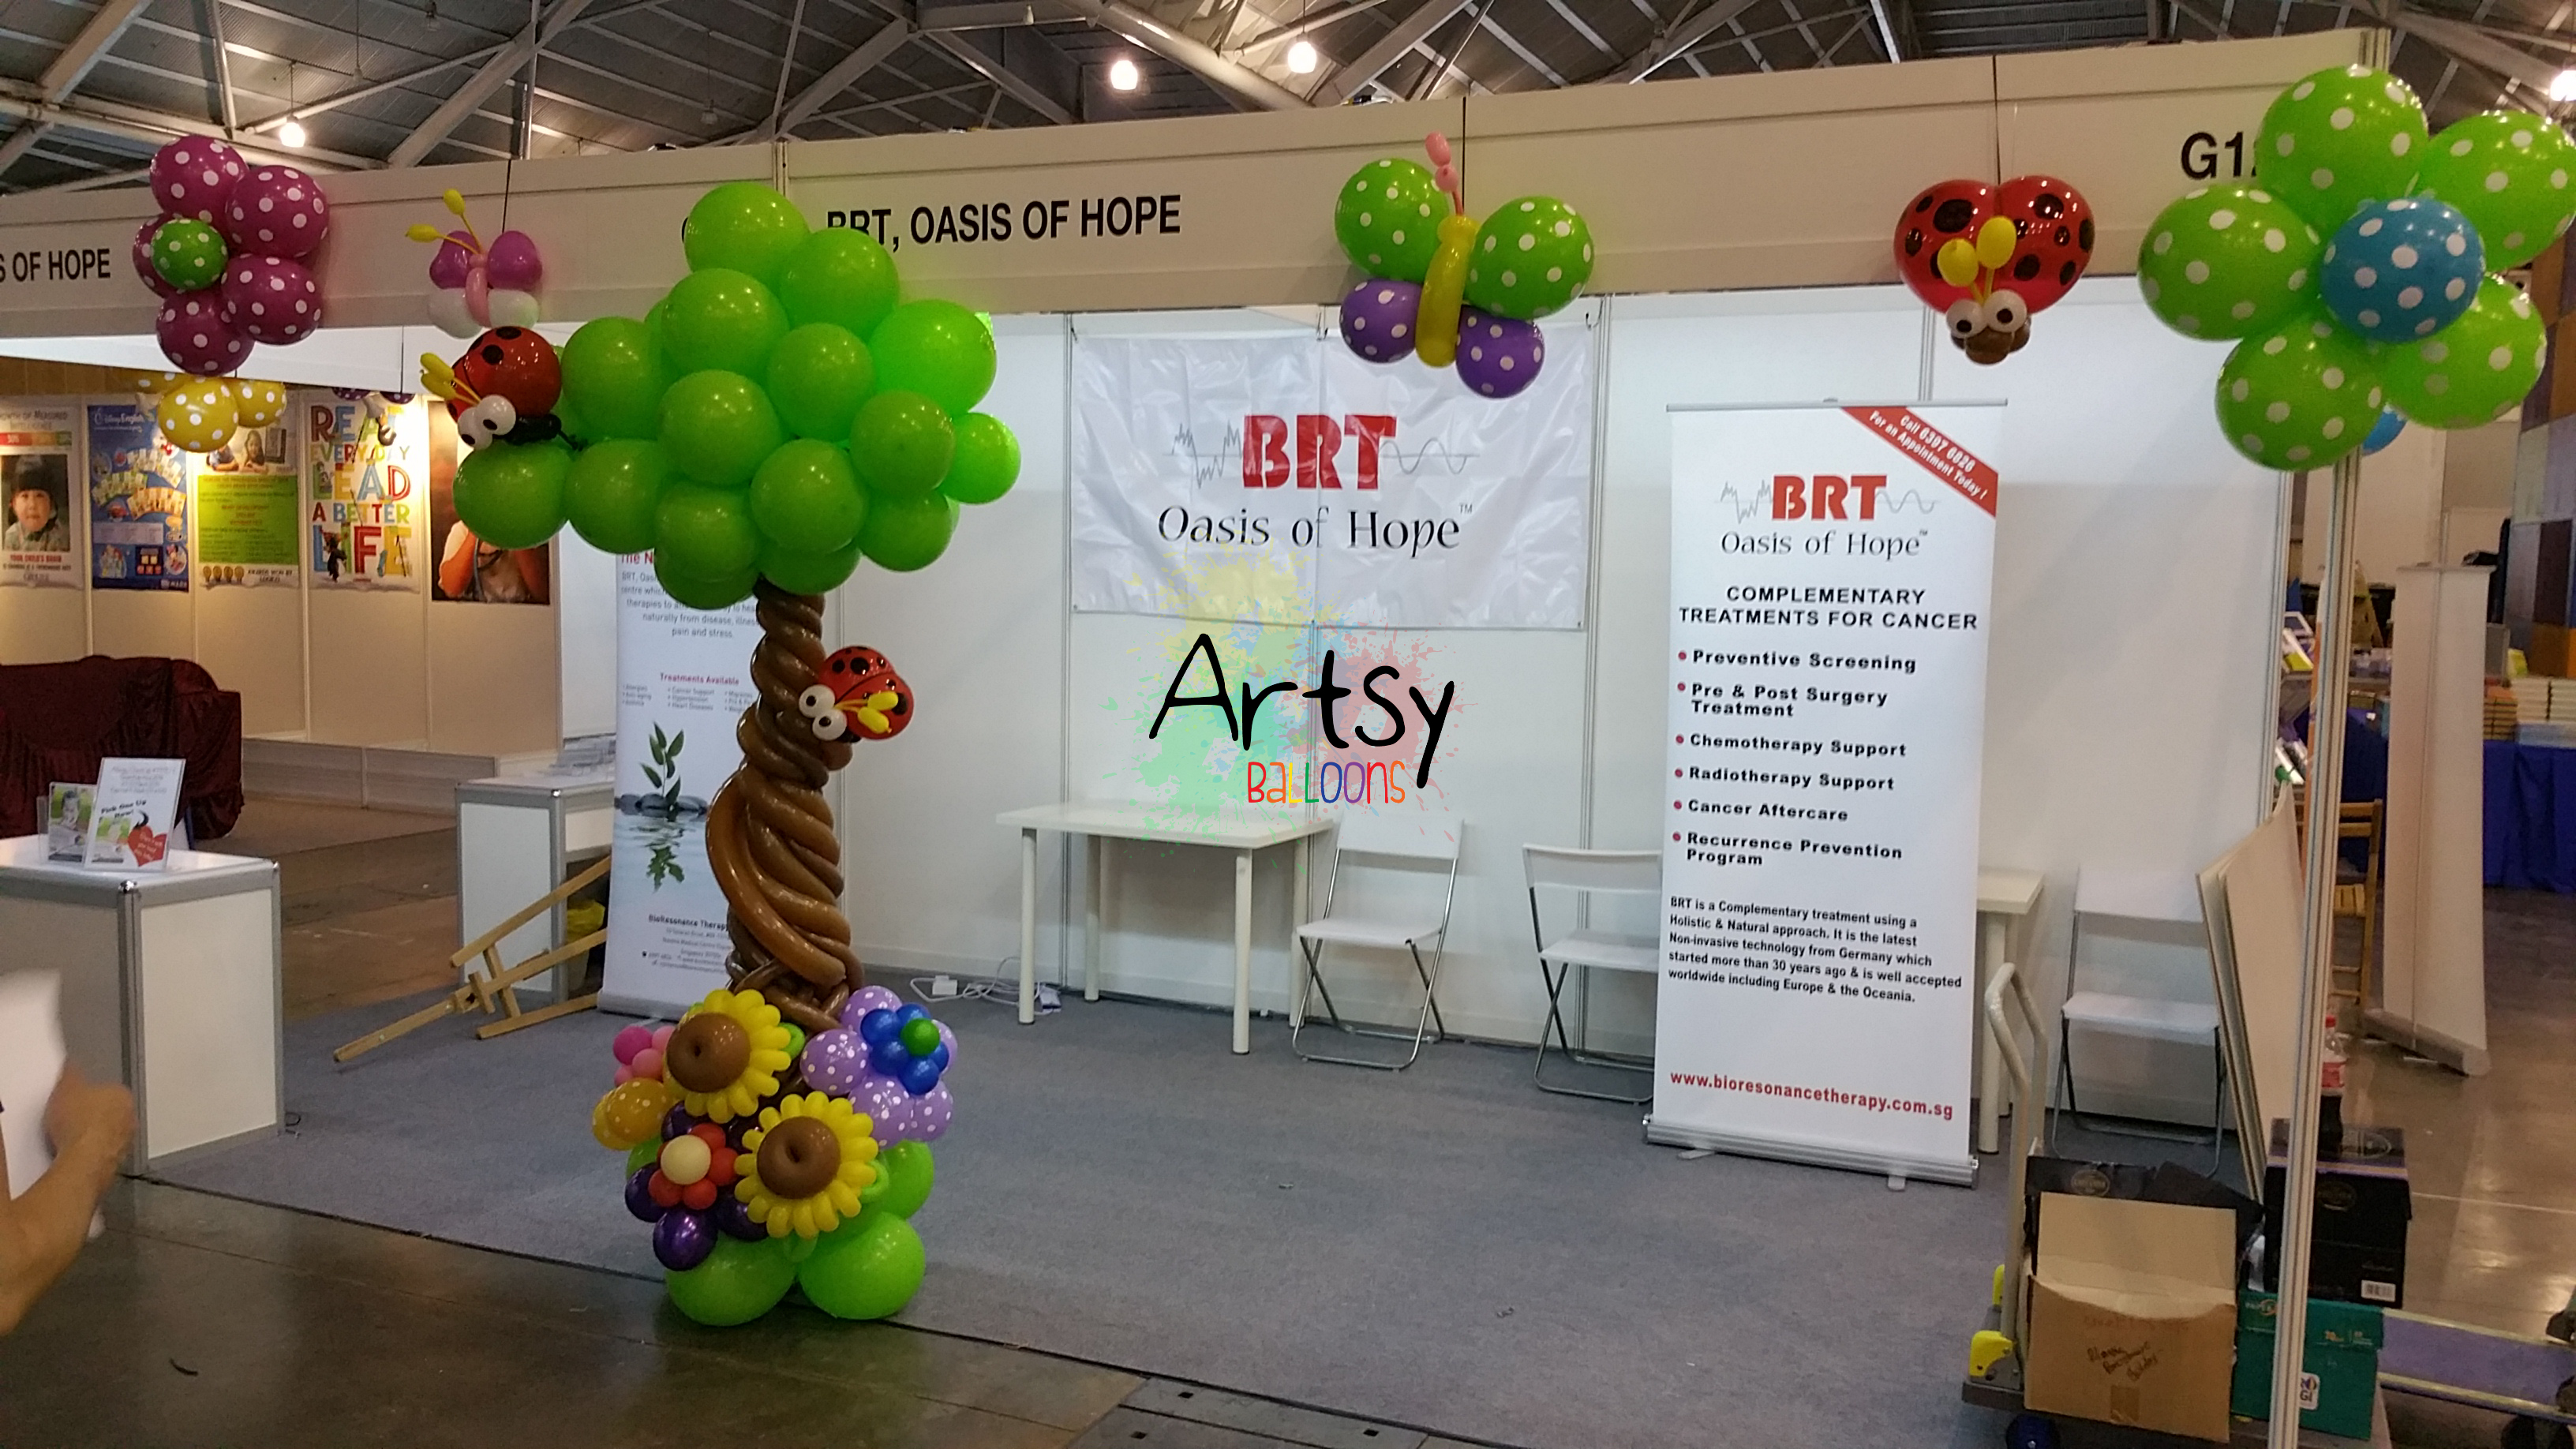 Party expo balloons images for Decoration ideas